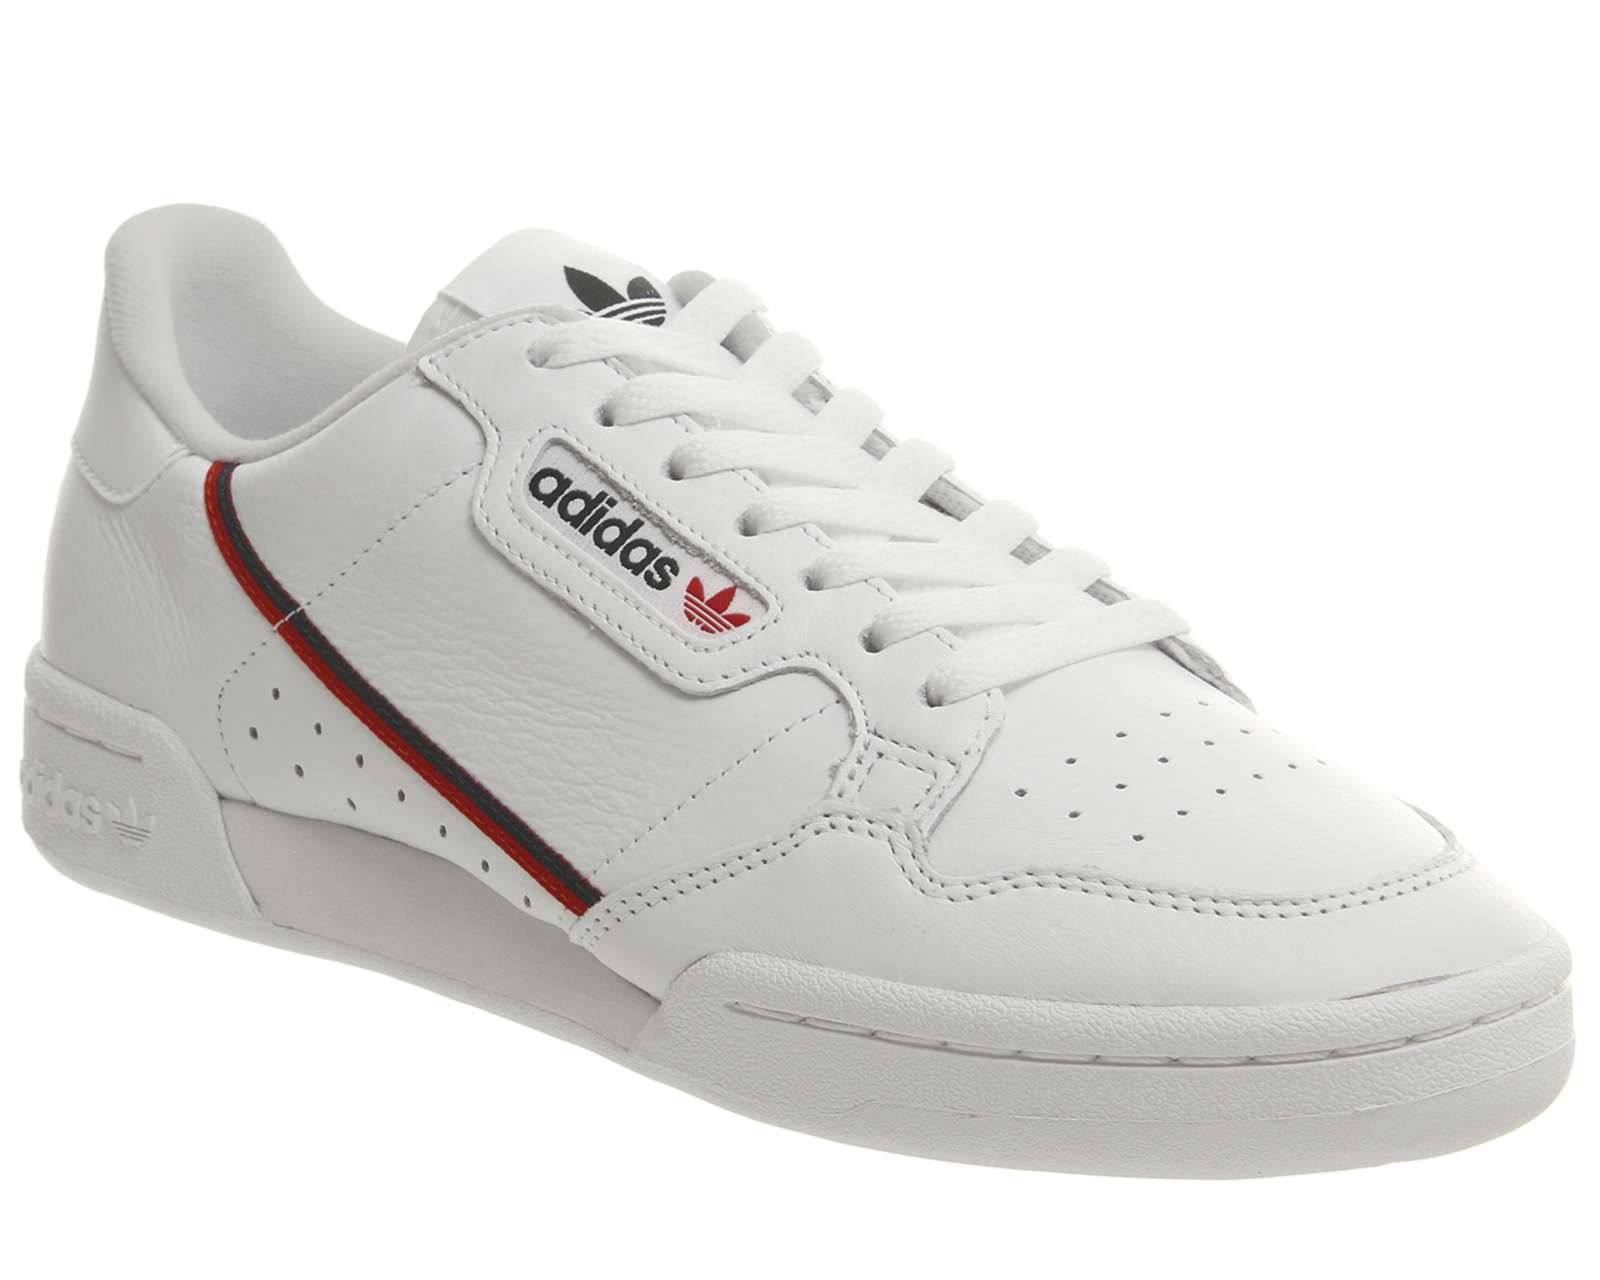 a7ab5401f1e04 Sentinel Adidas Continental 80 s Trainers WHITE SCARLETT COLLEGIATE NAVY  Trainers Shoes